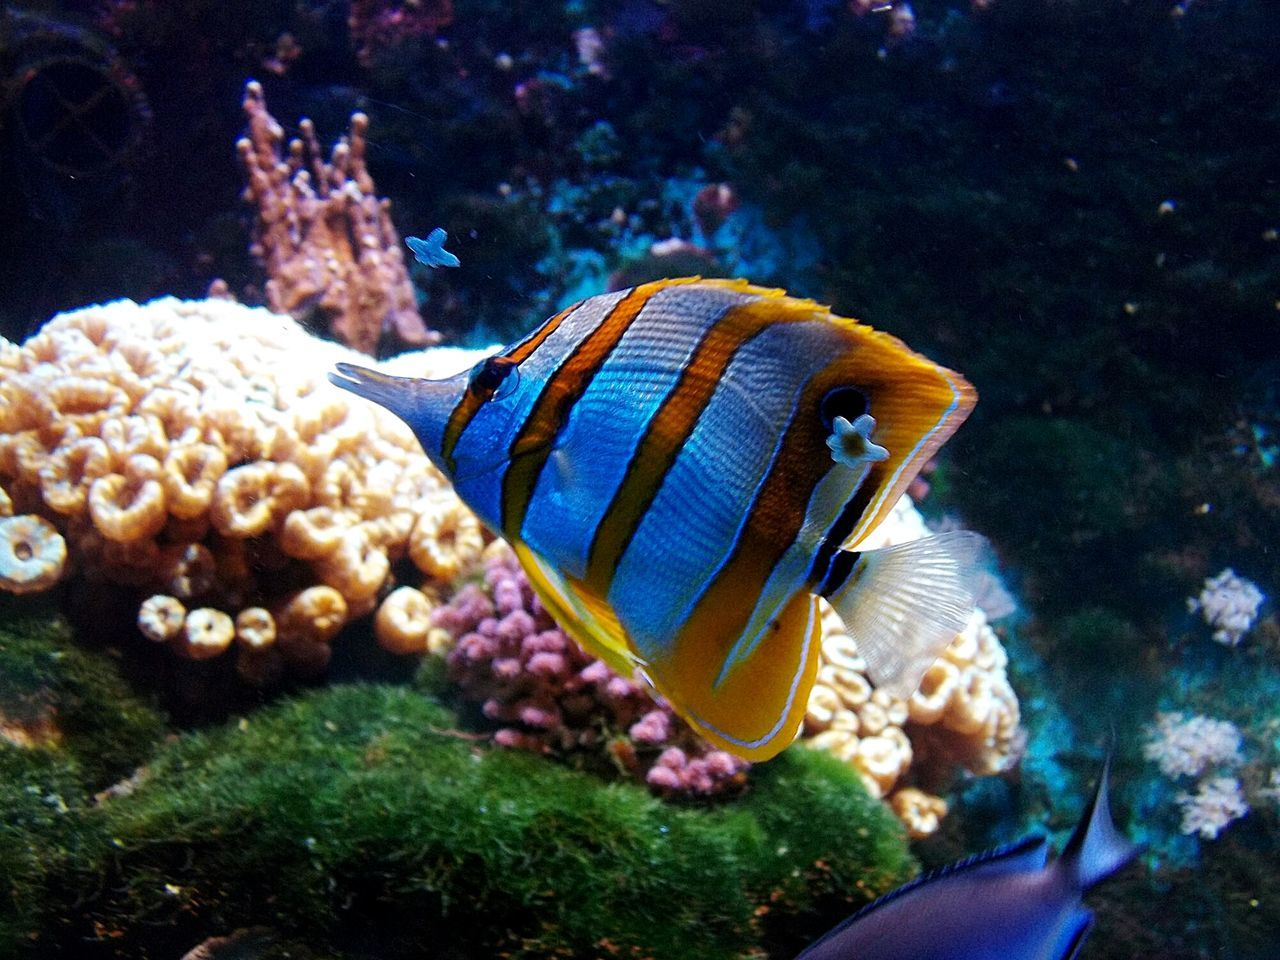 Aquarium Aquarium Life Aquatic Color Fish Fish Pesce Acquario Acqua Colorato Mondo Marino Animal Animals Animal Photography Fishs Pesci Coral Coralli Hello World EyeEm Gallery EyeEm Animal Lover Animali Water EyeEm Best Shots EyeEm Best Edits Nature's Diversities